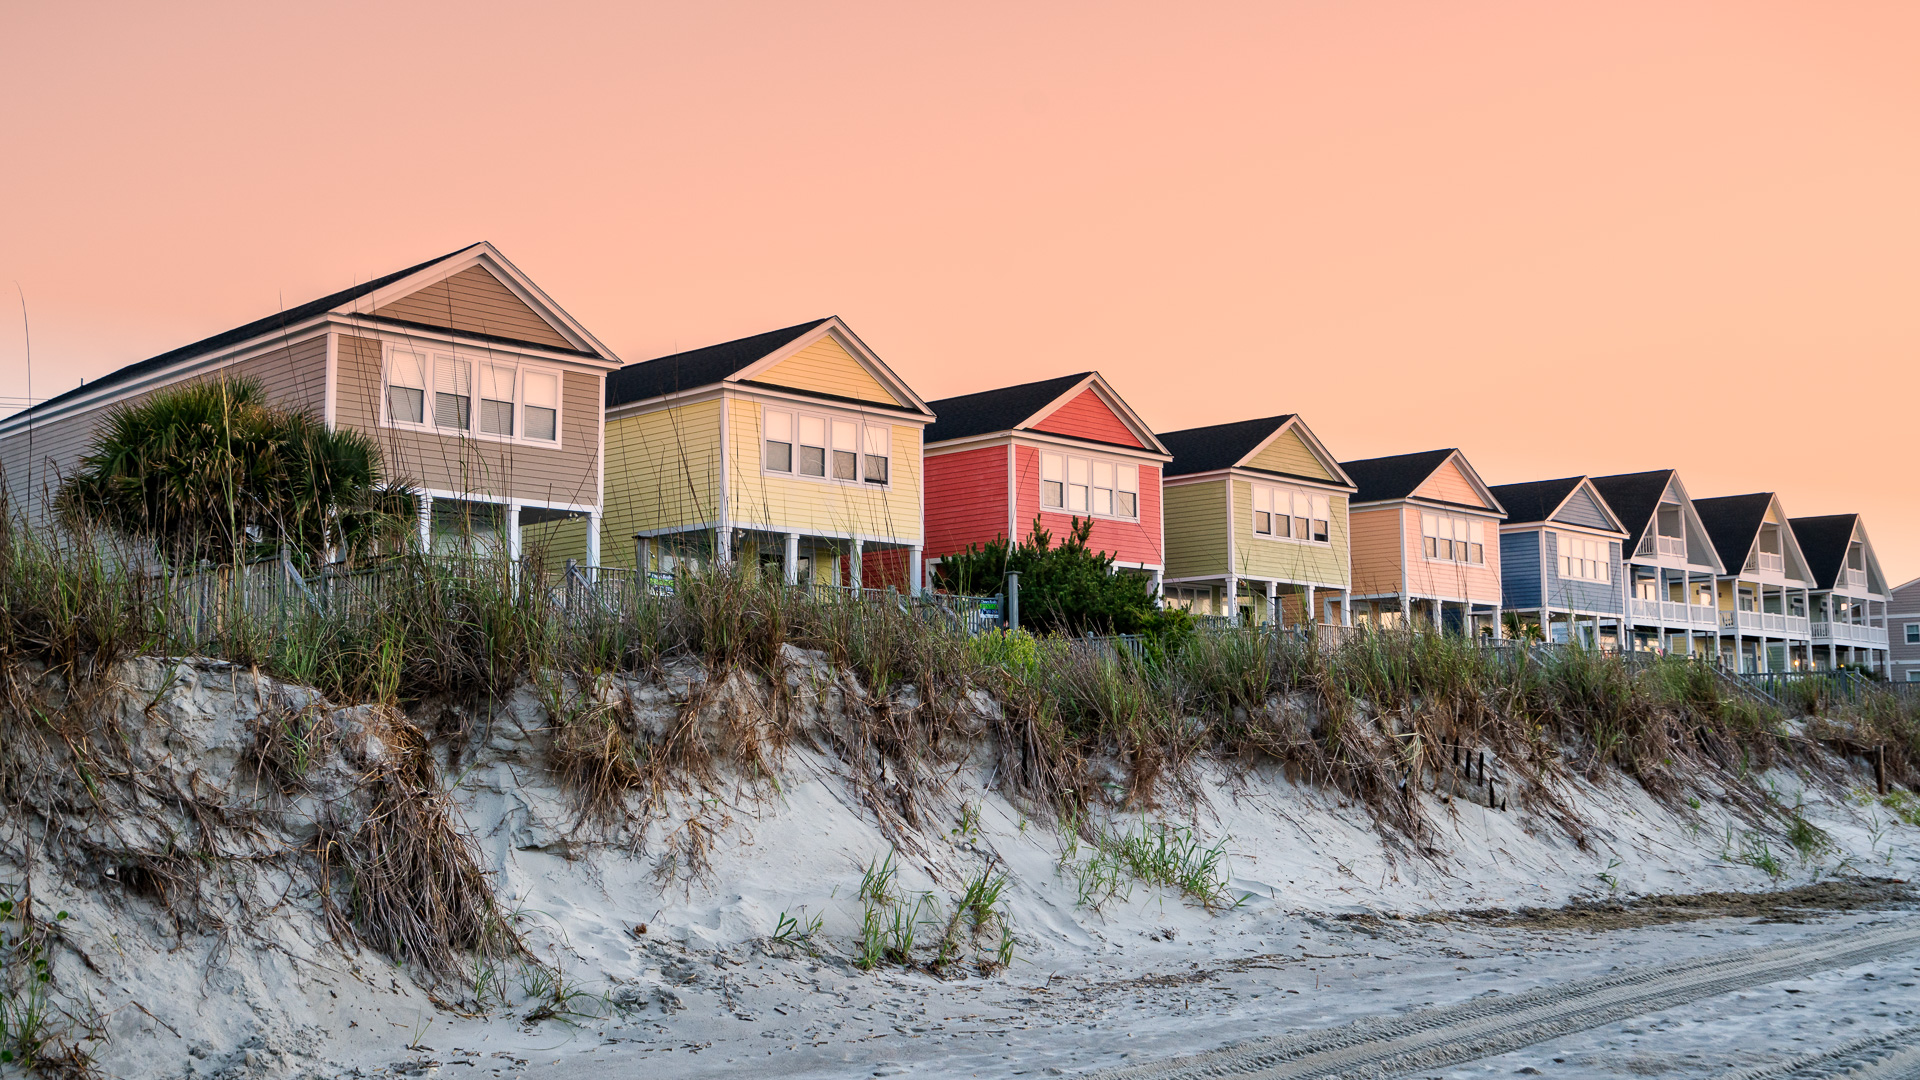 The Cost to Own a 3-Bedroom Home in Every State